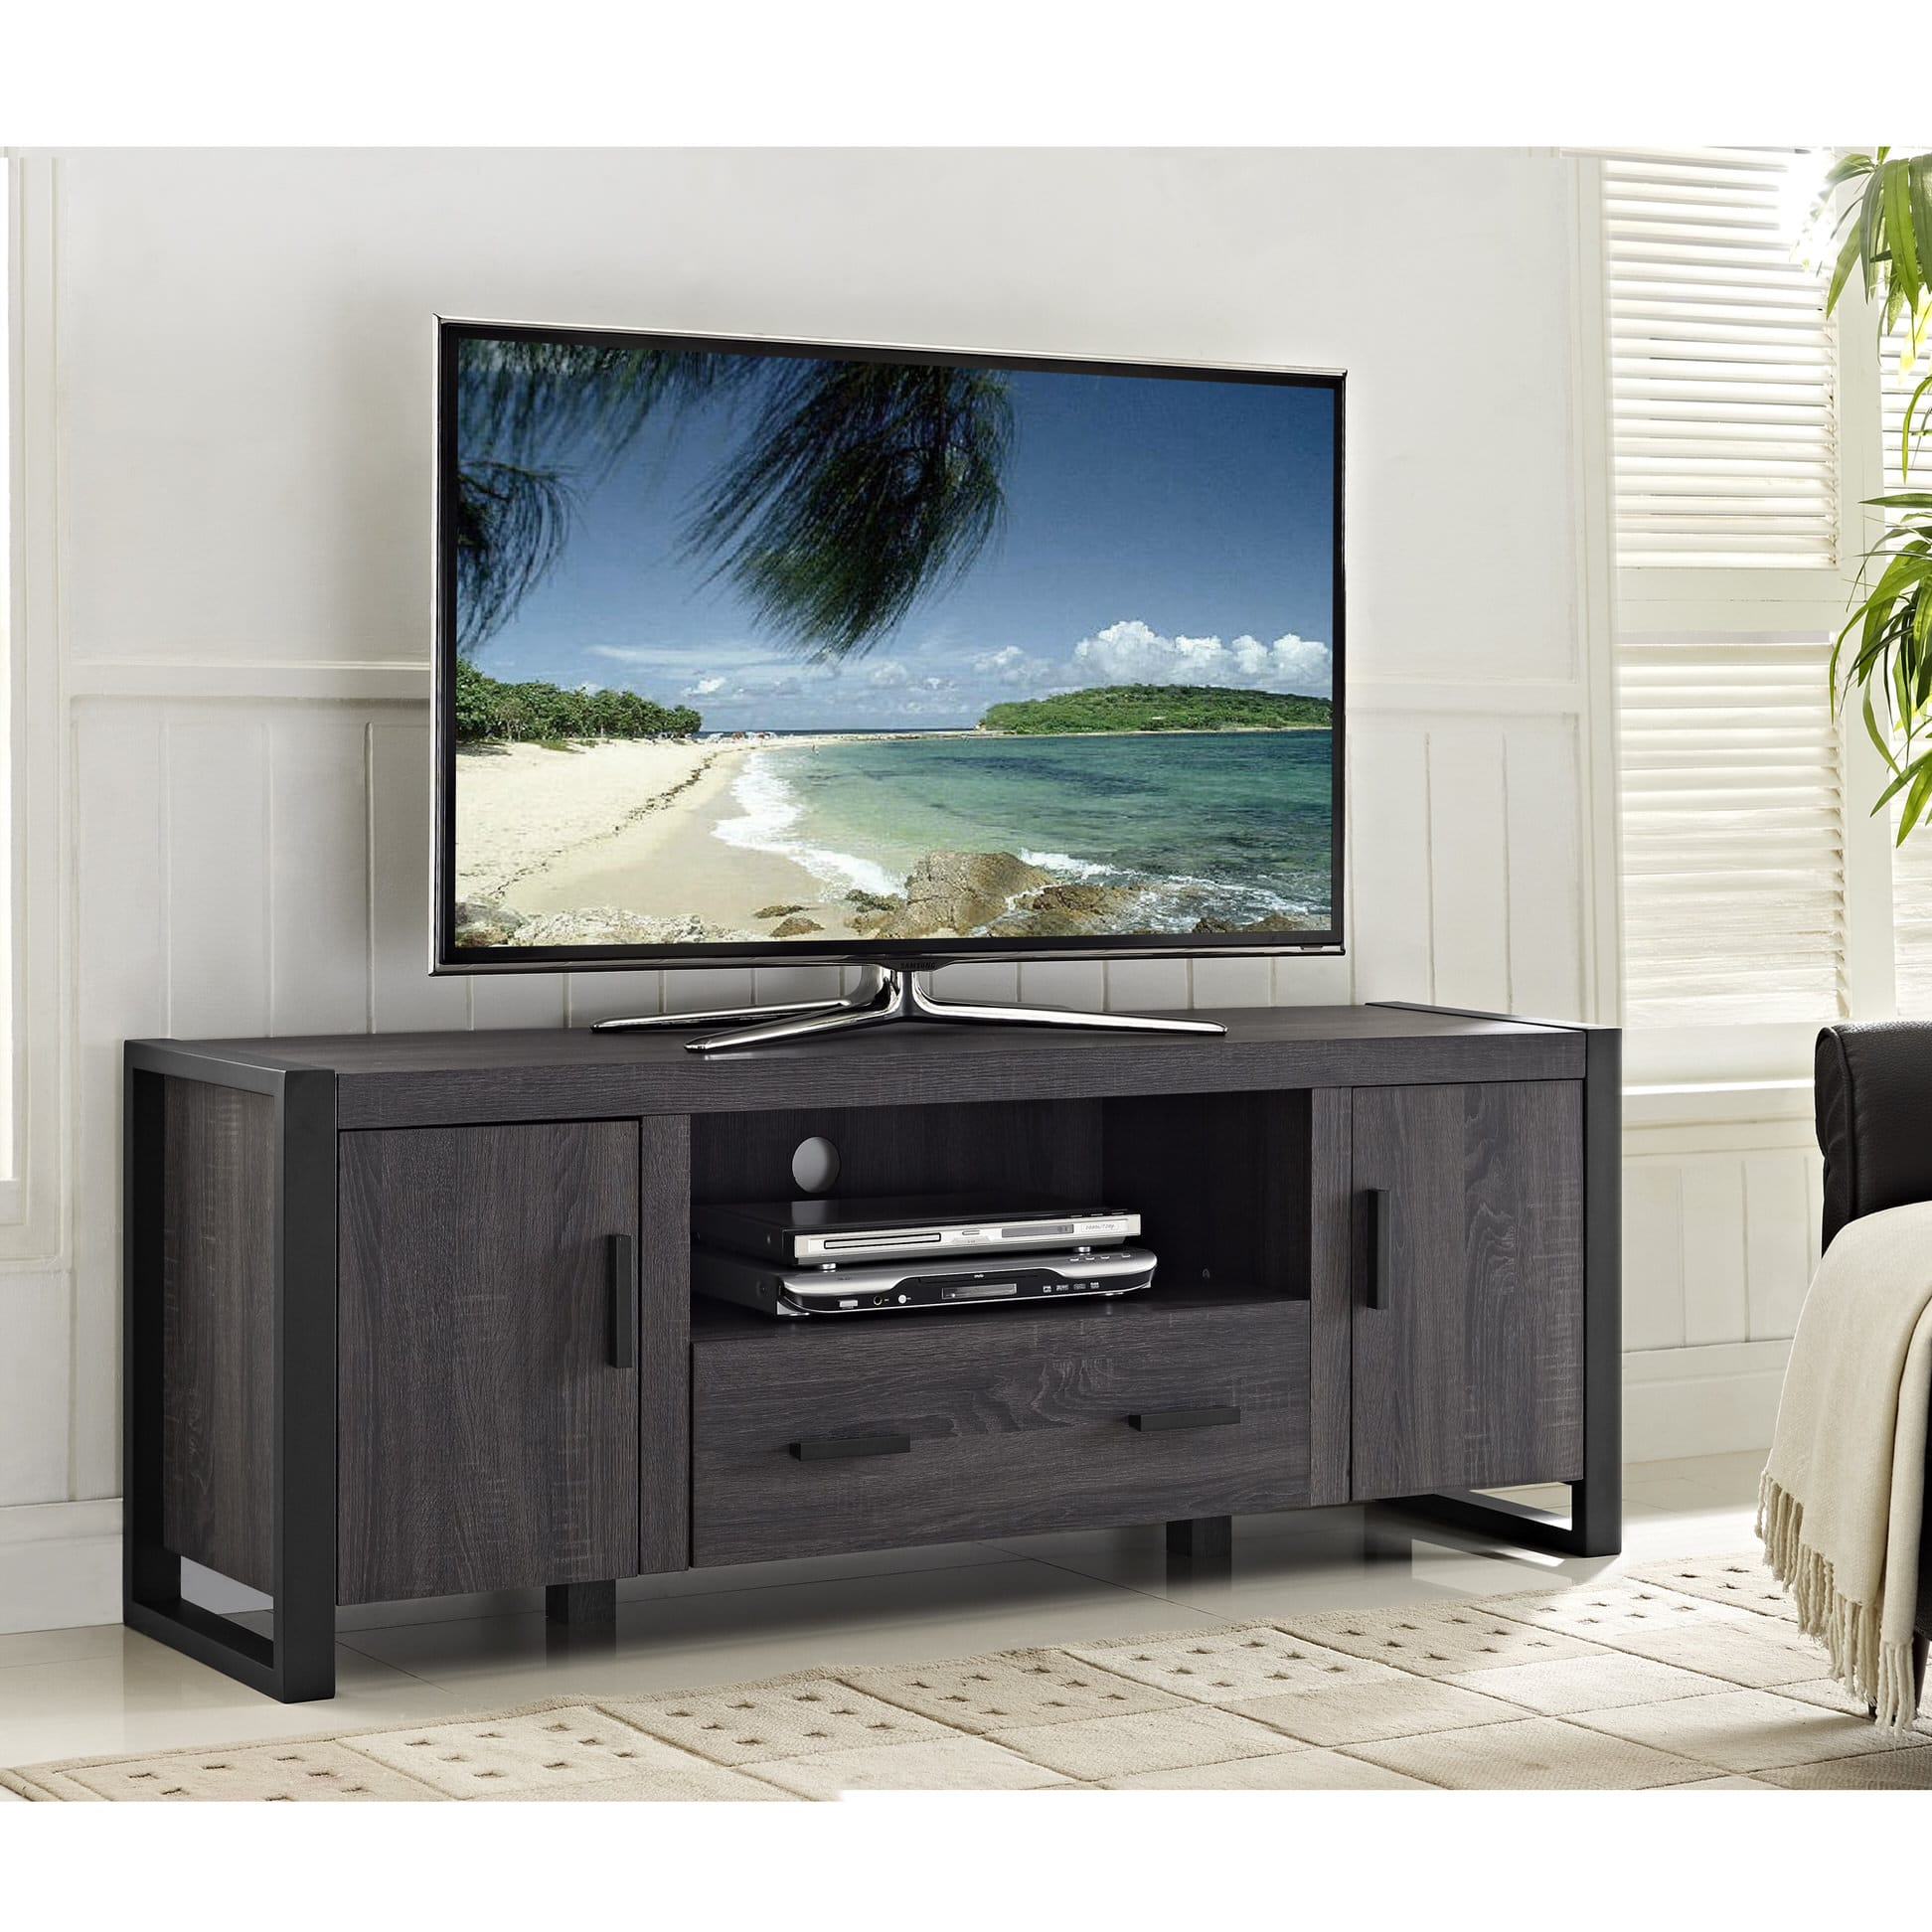 Urban Blend 60 Inch Tv Stand Charcoalblack By Walker Edison